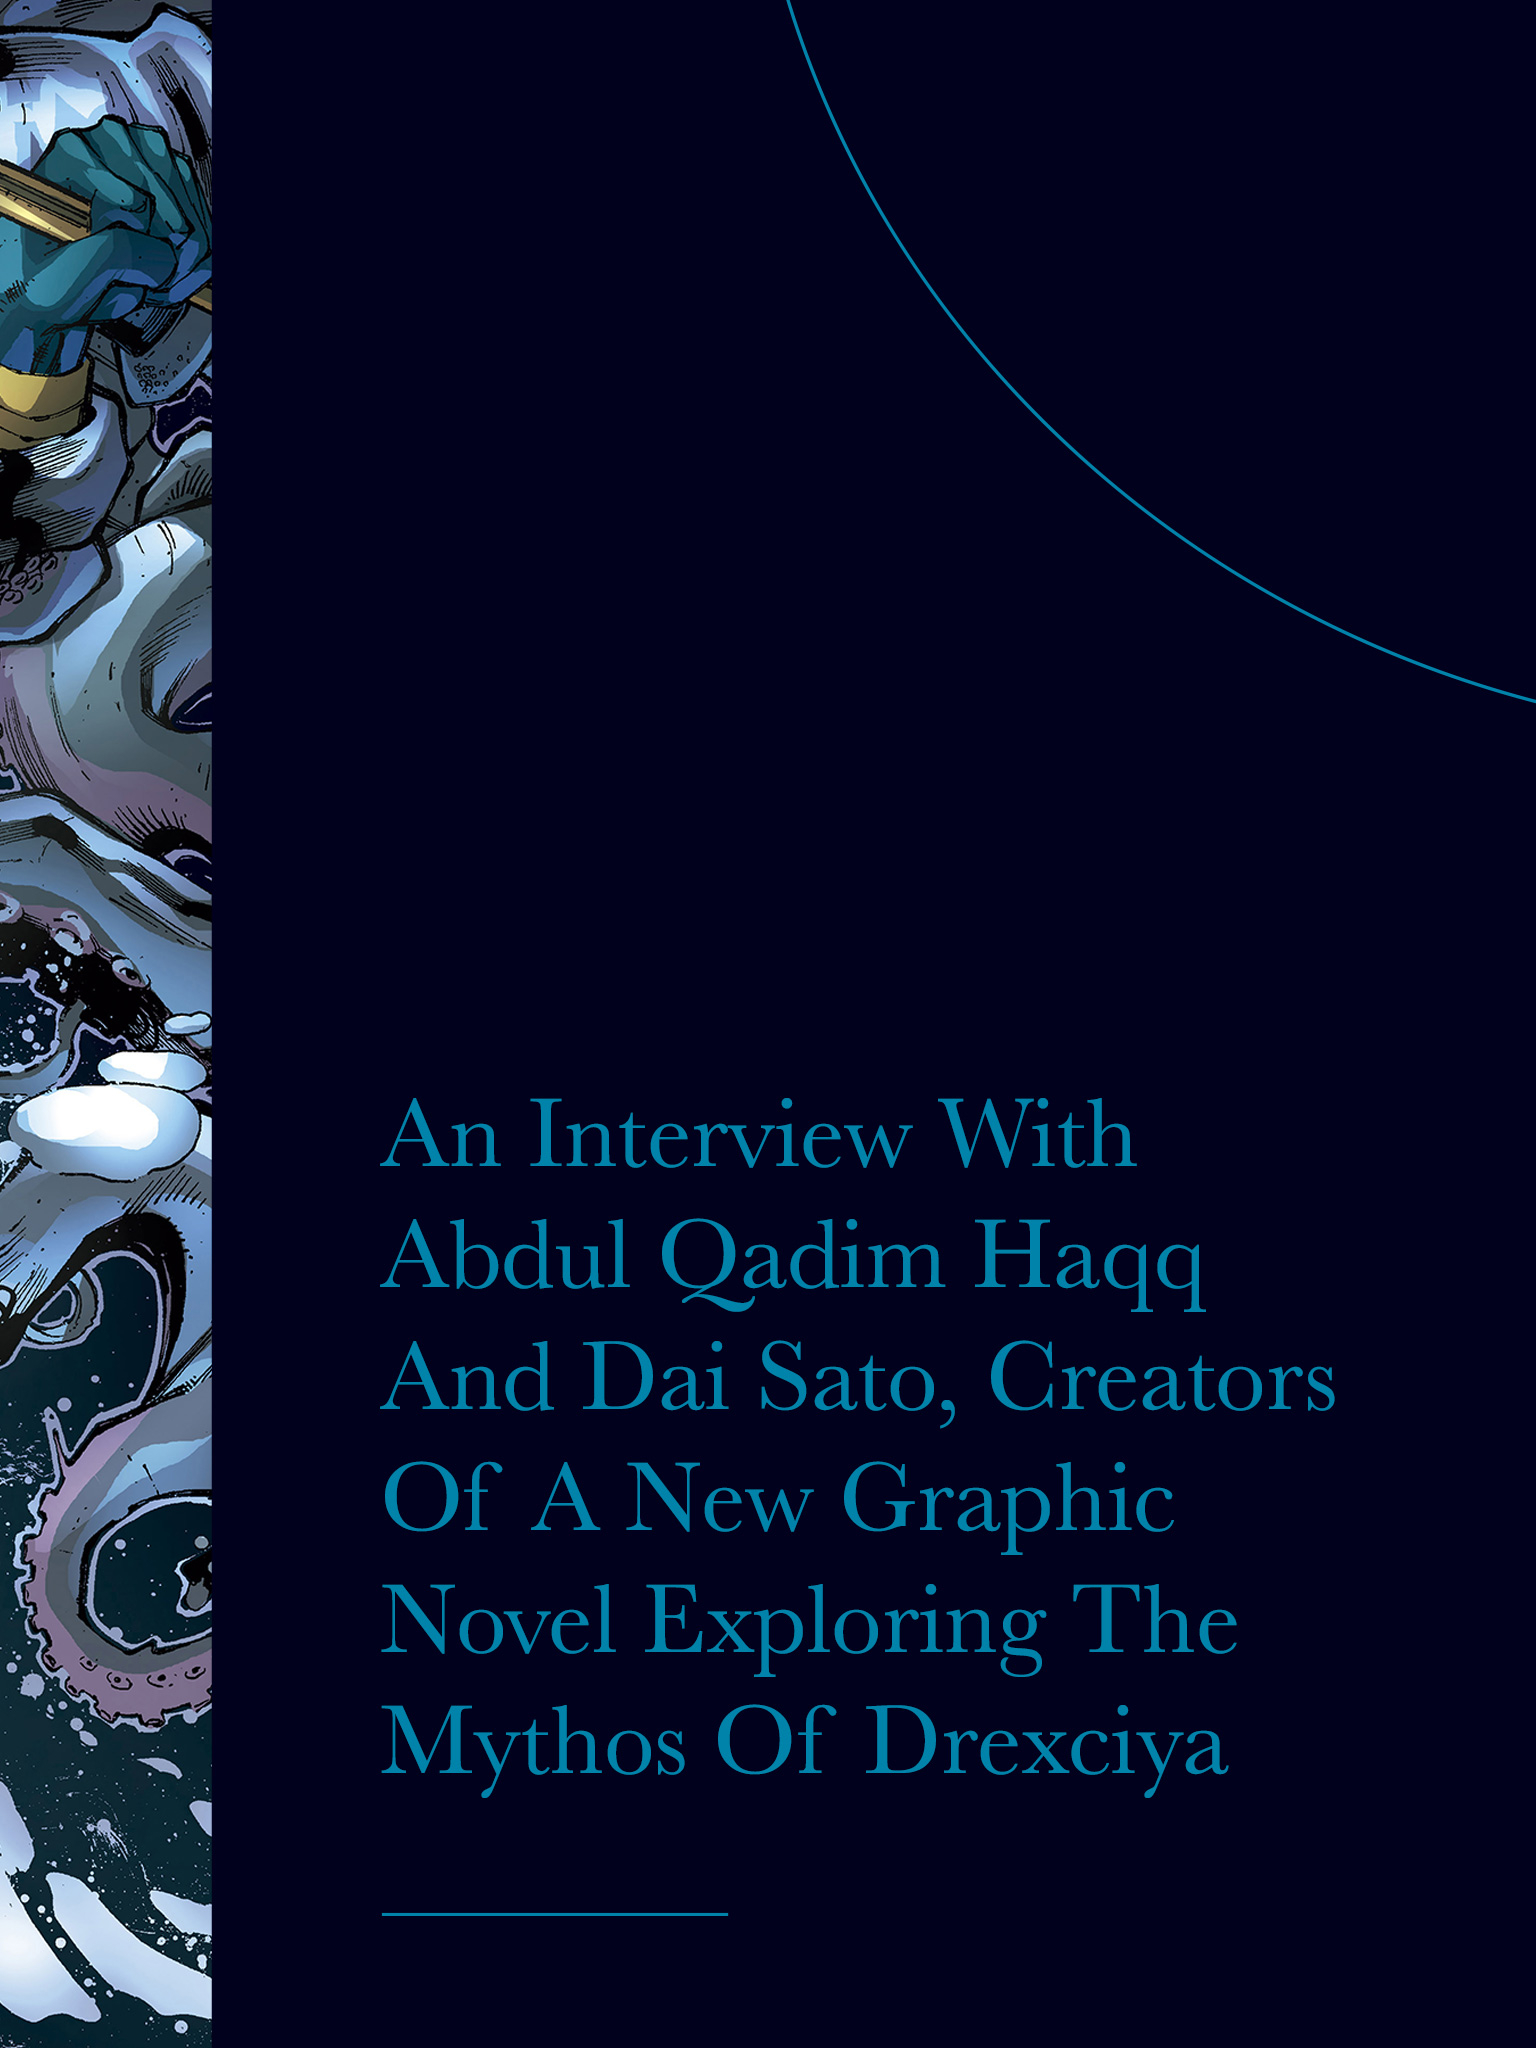 An Interview With Abdul Qadim Haqq And Dai Sato, Creators Of A New Graphic Novel Exploring The Mythos Of Drexciya